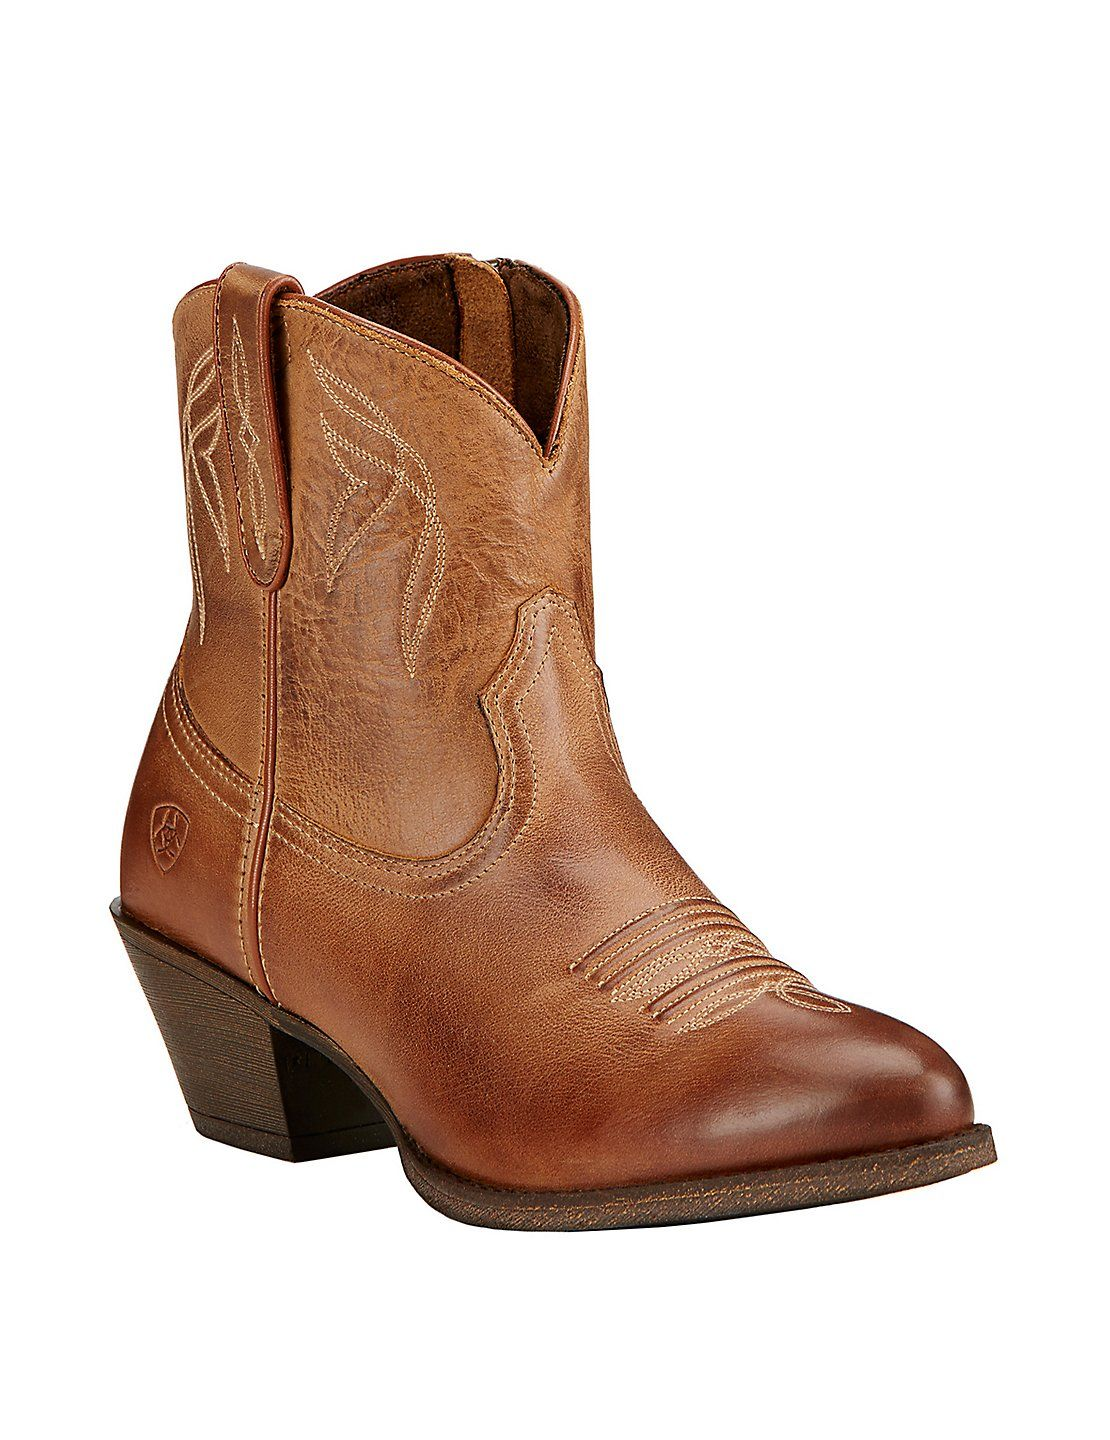 Women's Western Cowgirl Vintage Mid Calf Slouchy Almond Toe Pointy Ankle Bootie Boots